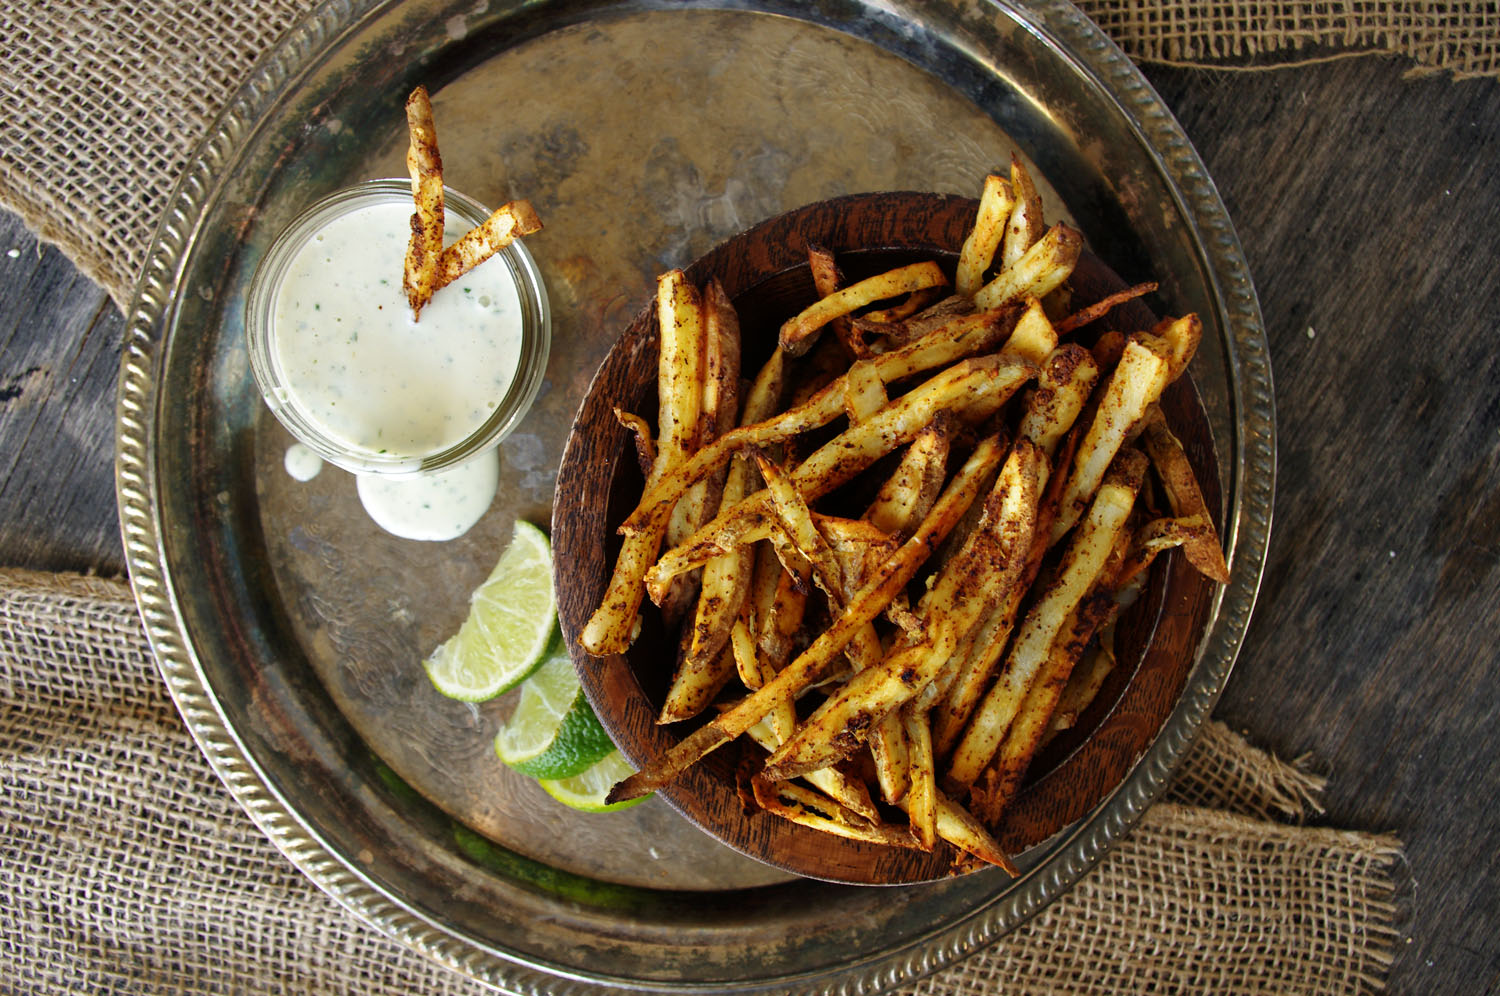 Baked Mexican Street Fries with Cilantro Lime Salsa Verde Ranch